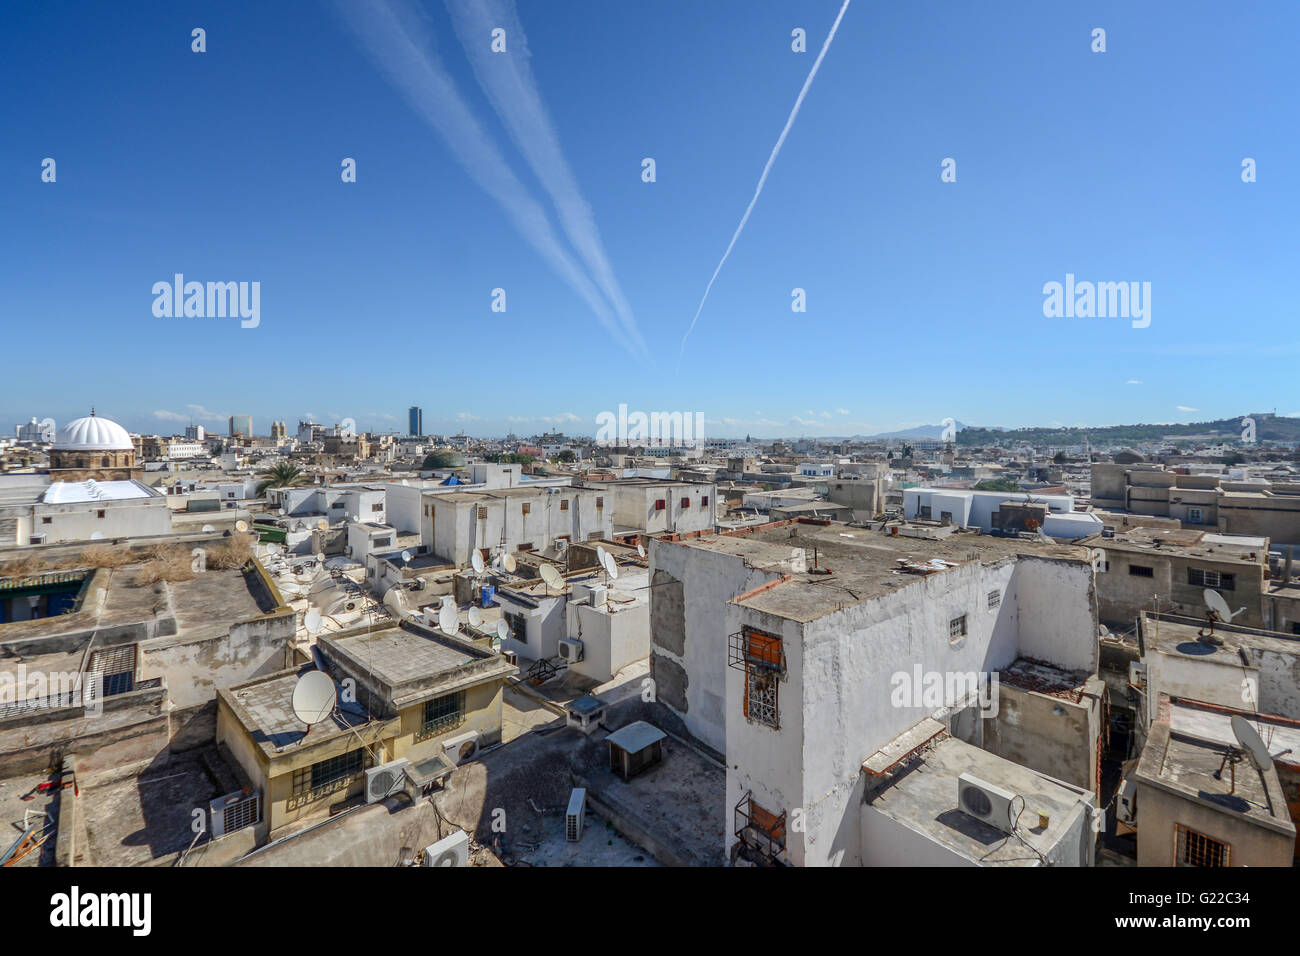 aerial view of historic city of Tunis, Tunisia. - Stock Image